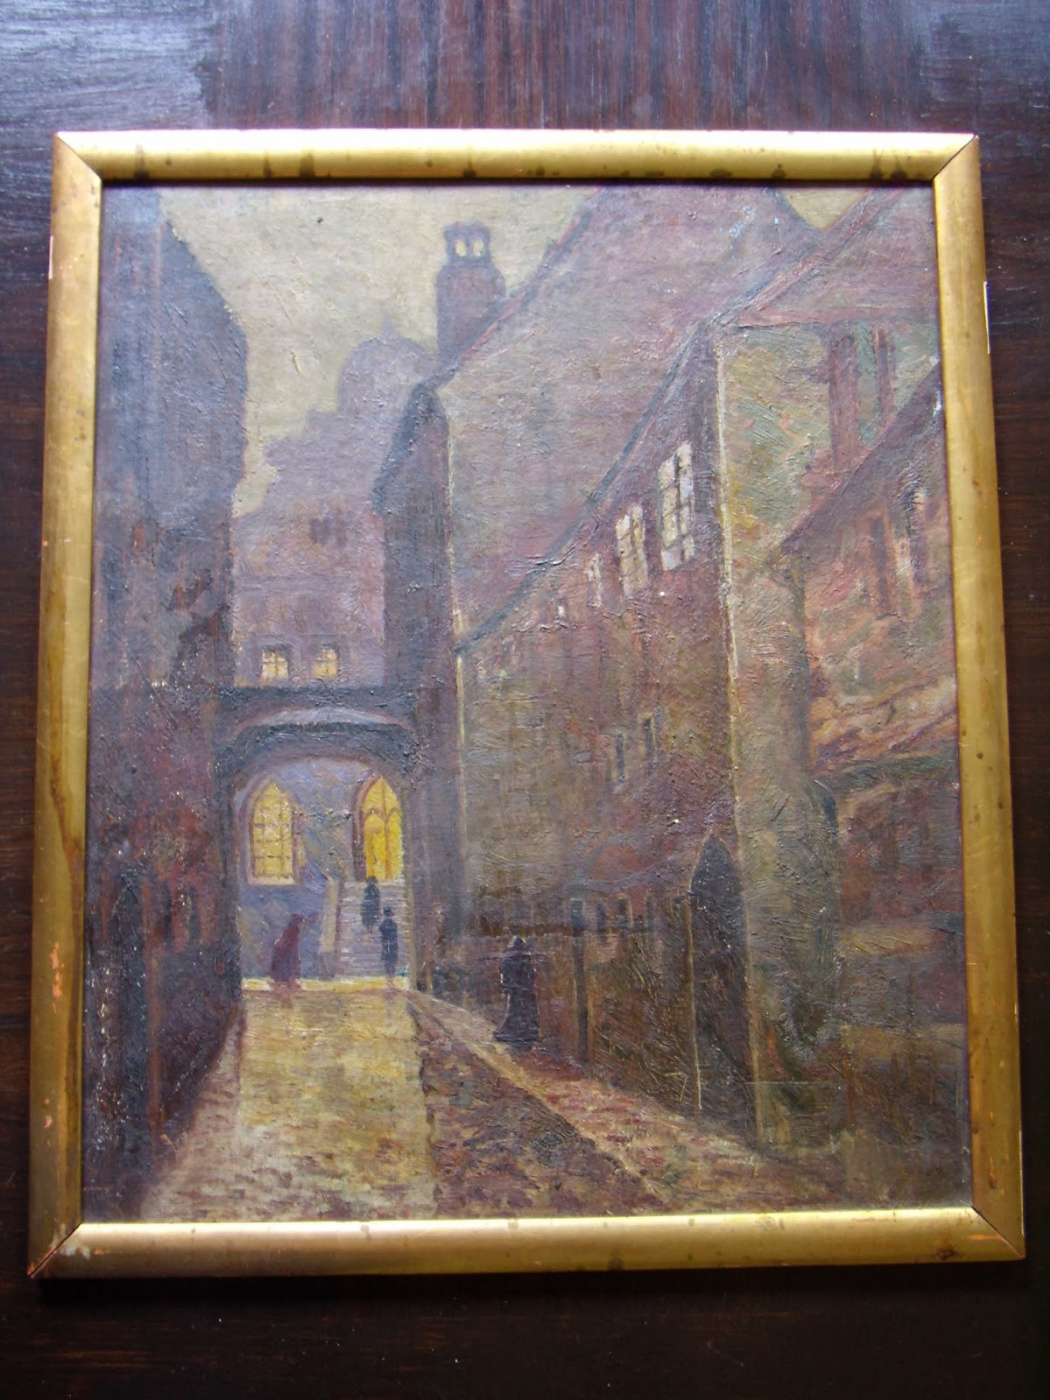 Unknown artist. Narrow streets of the old city at night.